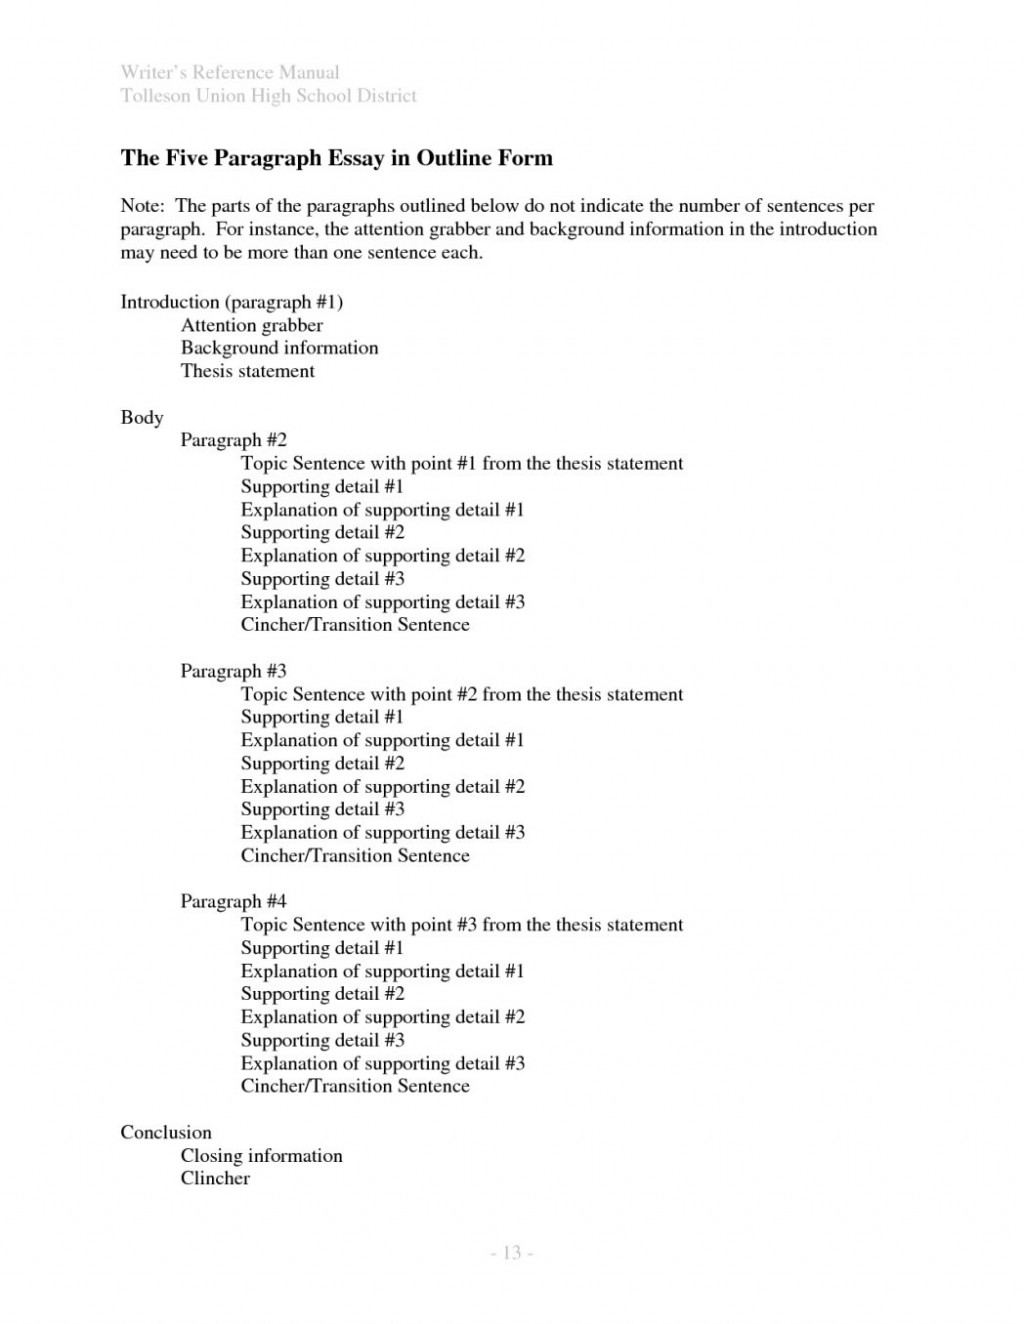 026 An Outline For Research Paper Argumentative Essay Abortion Inside High School Good Introduction Rare Sentences Paragraph A How To Write Conclusion Introductory Large